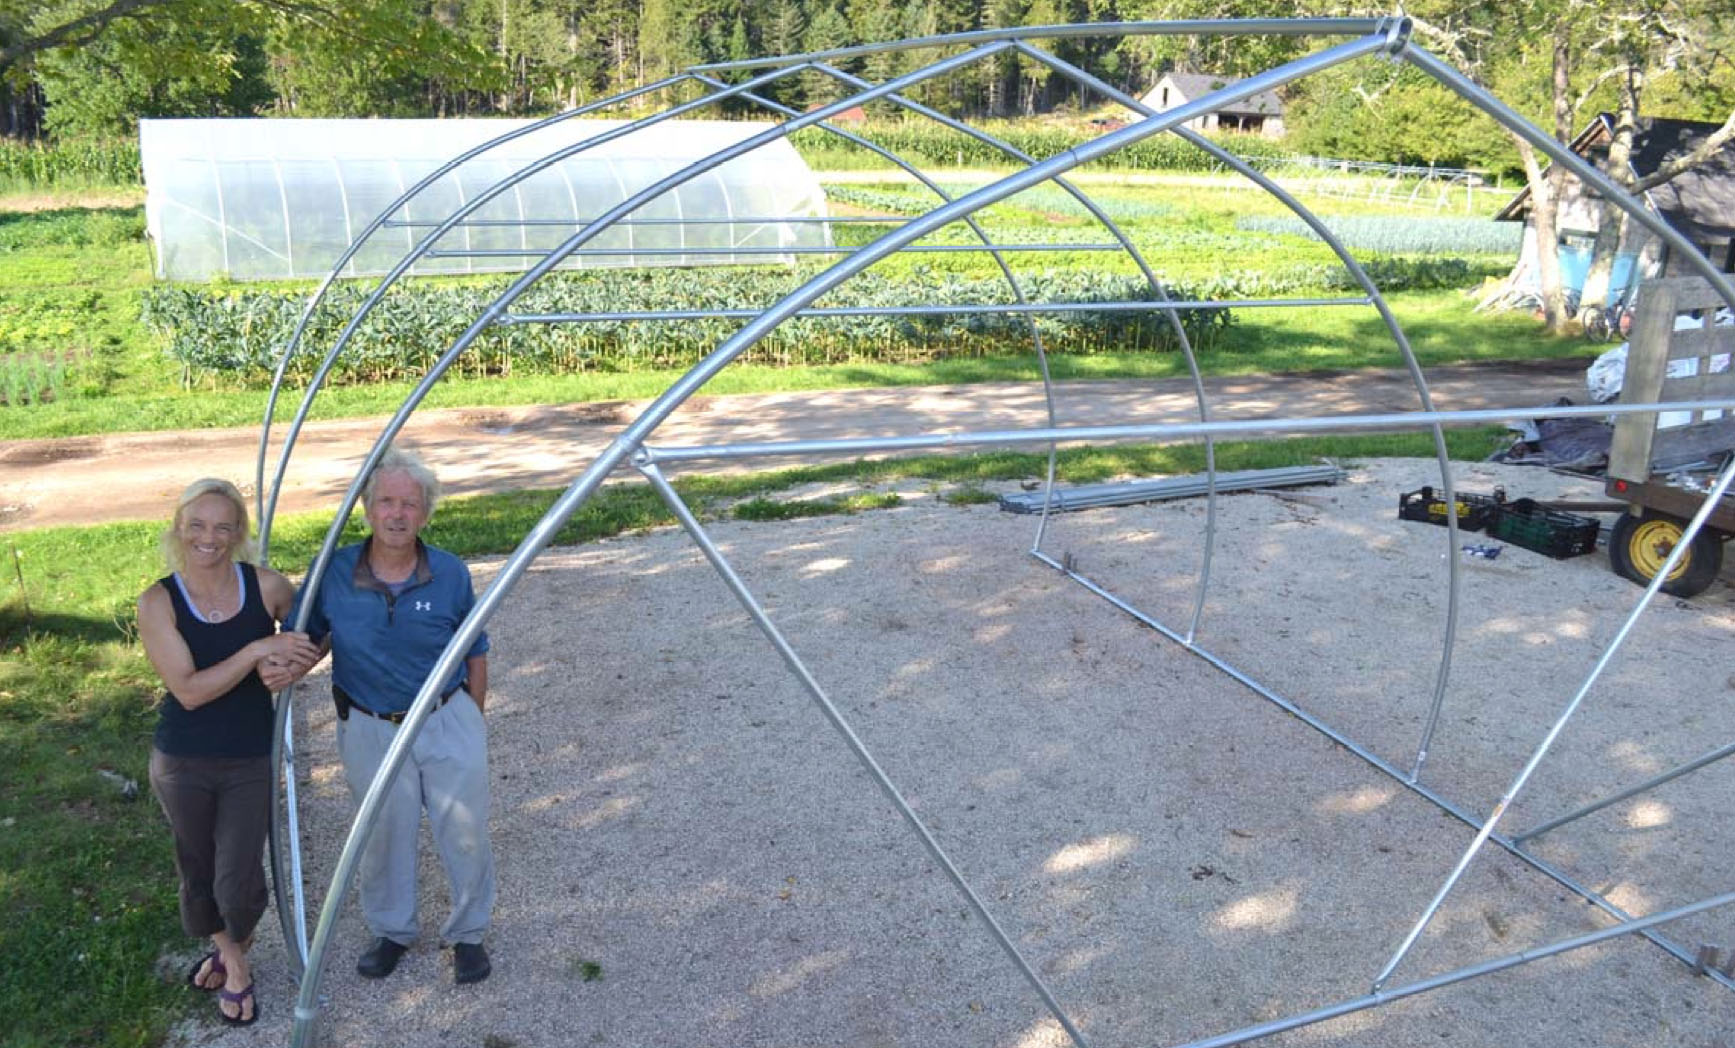 Eliot Coleman poses with his daughter Clara Coleman at Four Season Farm in Harborside, Maine. The two have just completed framing part of the 14' Gothic Modular Moveable Tunnel, based on Mr. Coleman's designs.